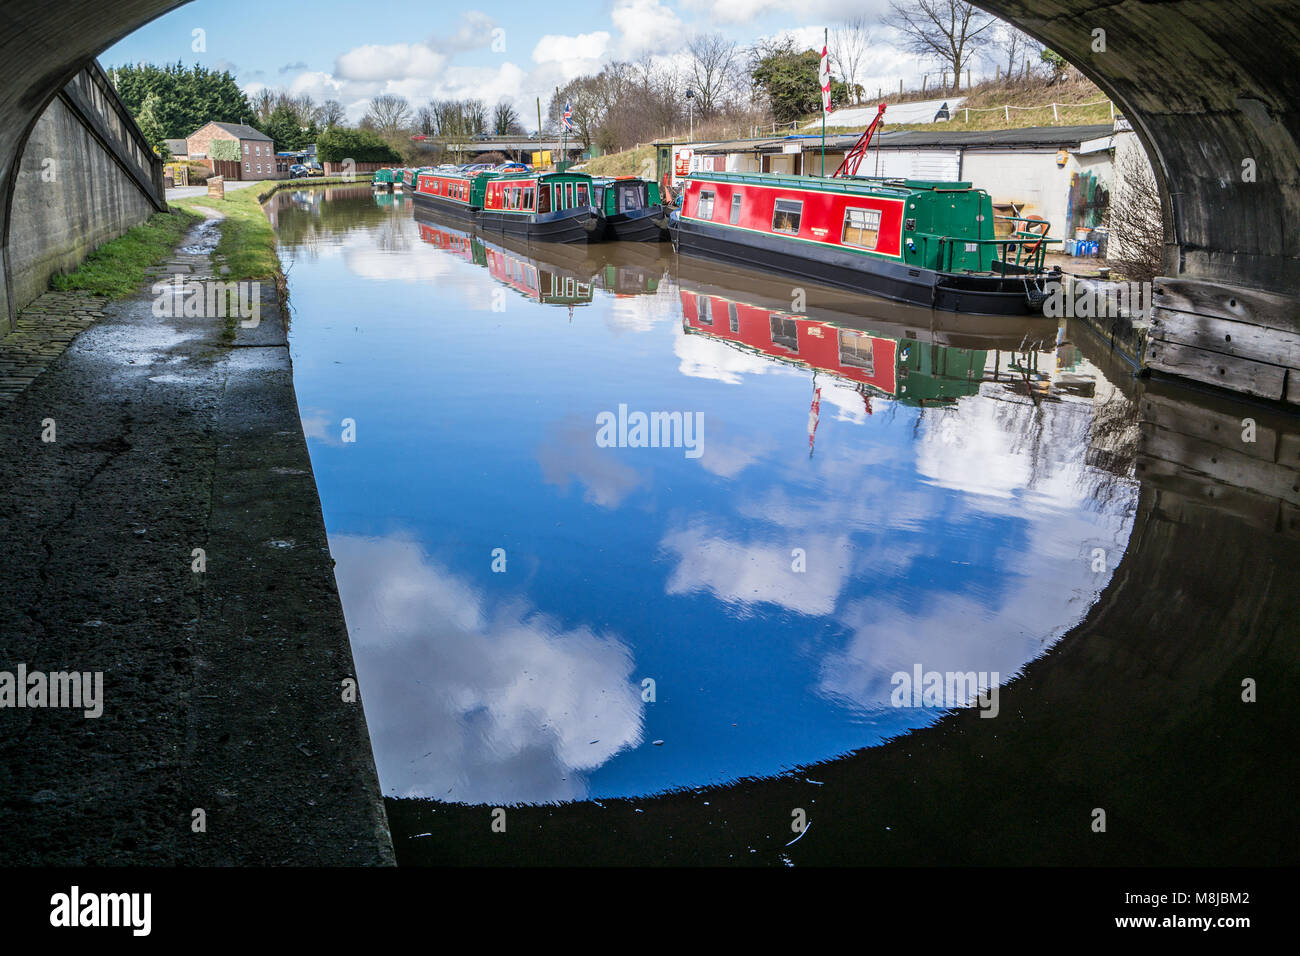 Narrow boats on the Bridgewater Canal ant Preston Brook, Cheshire, UK. - Stock Image